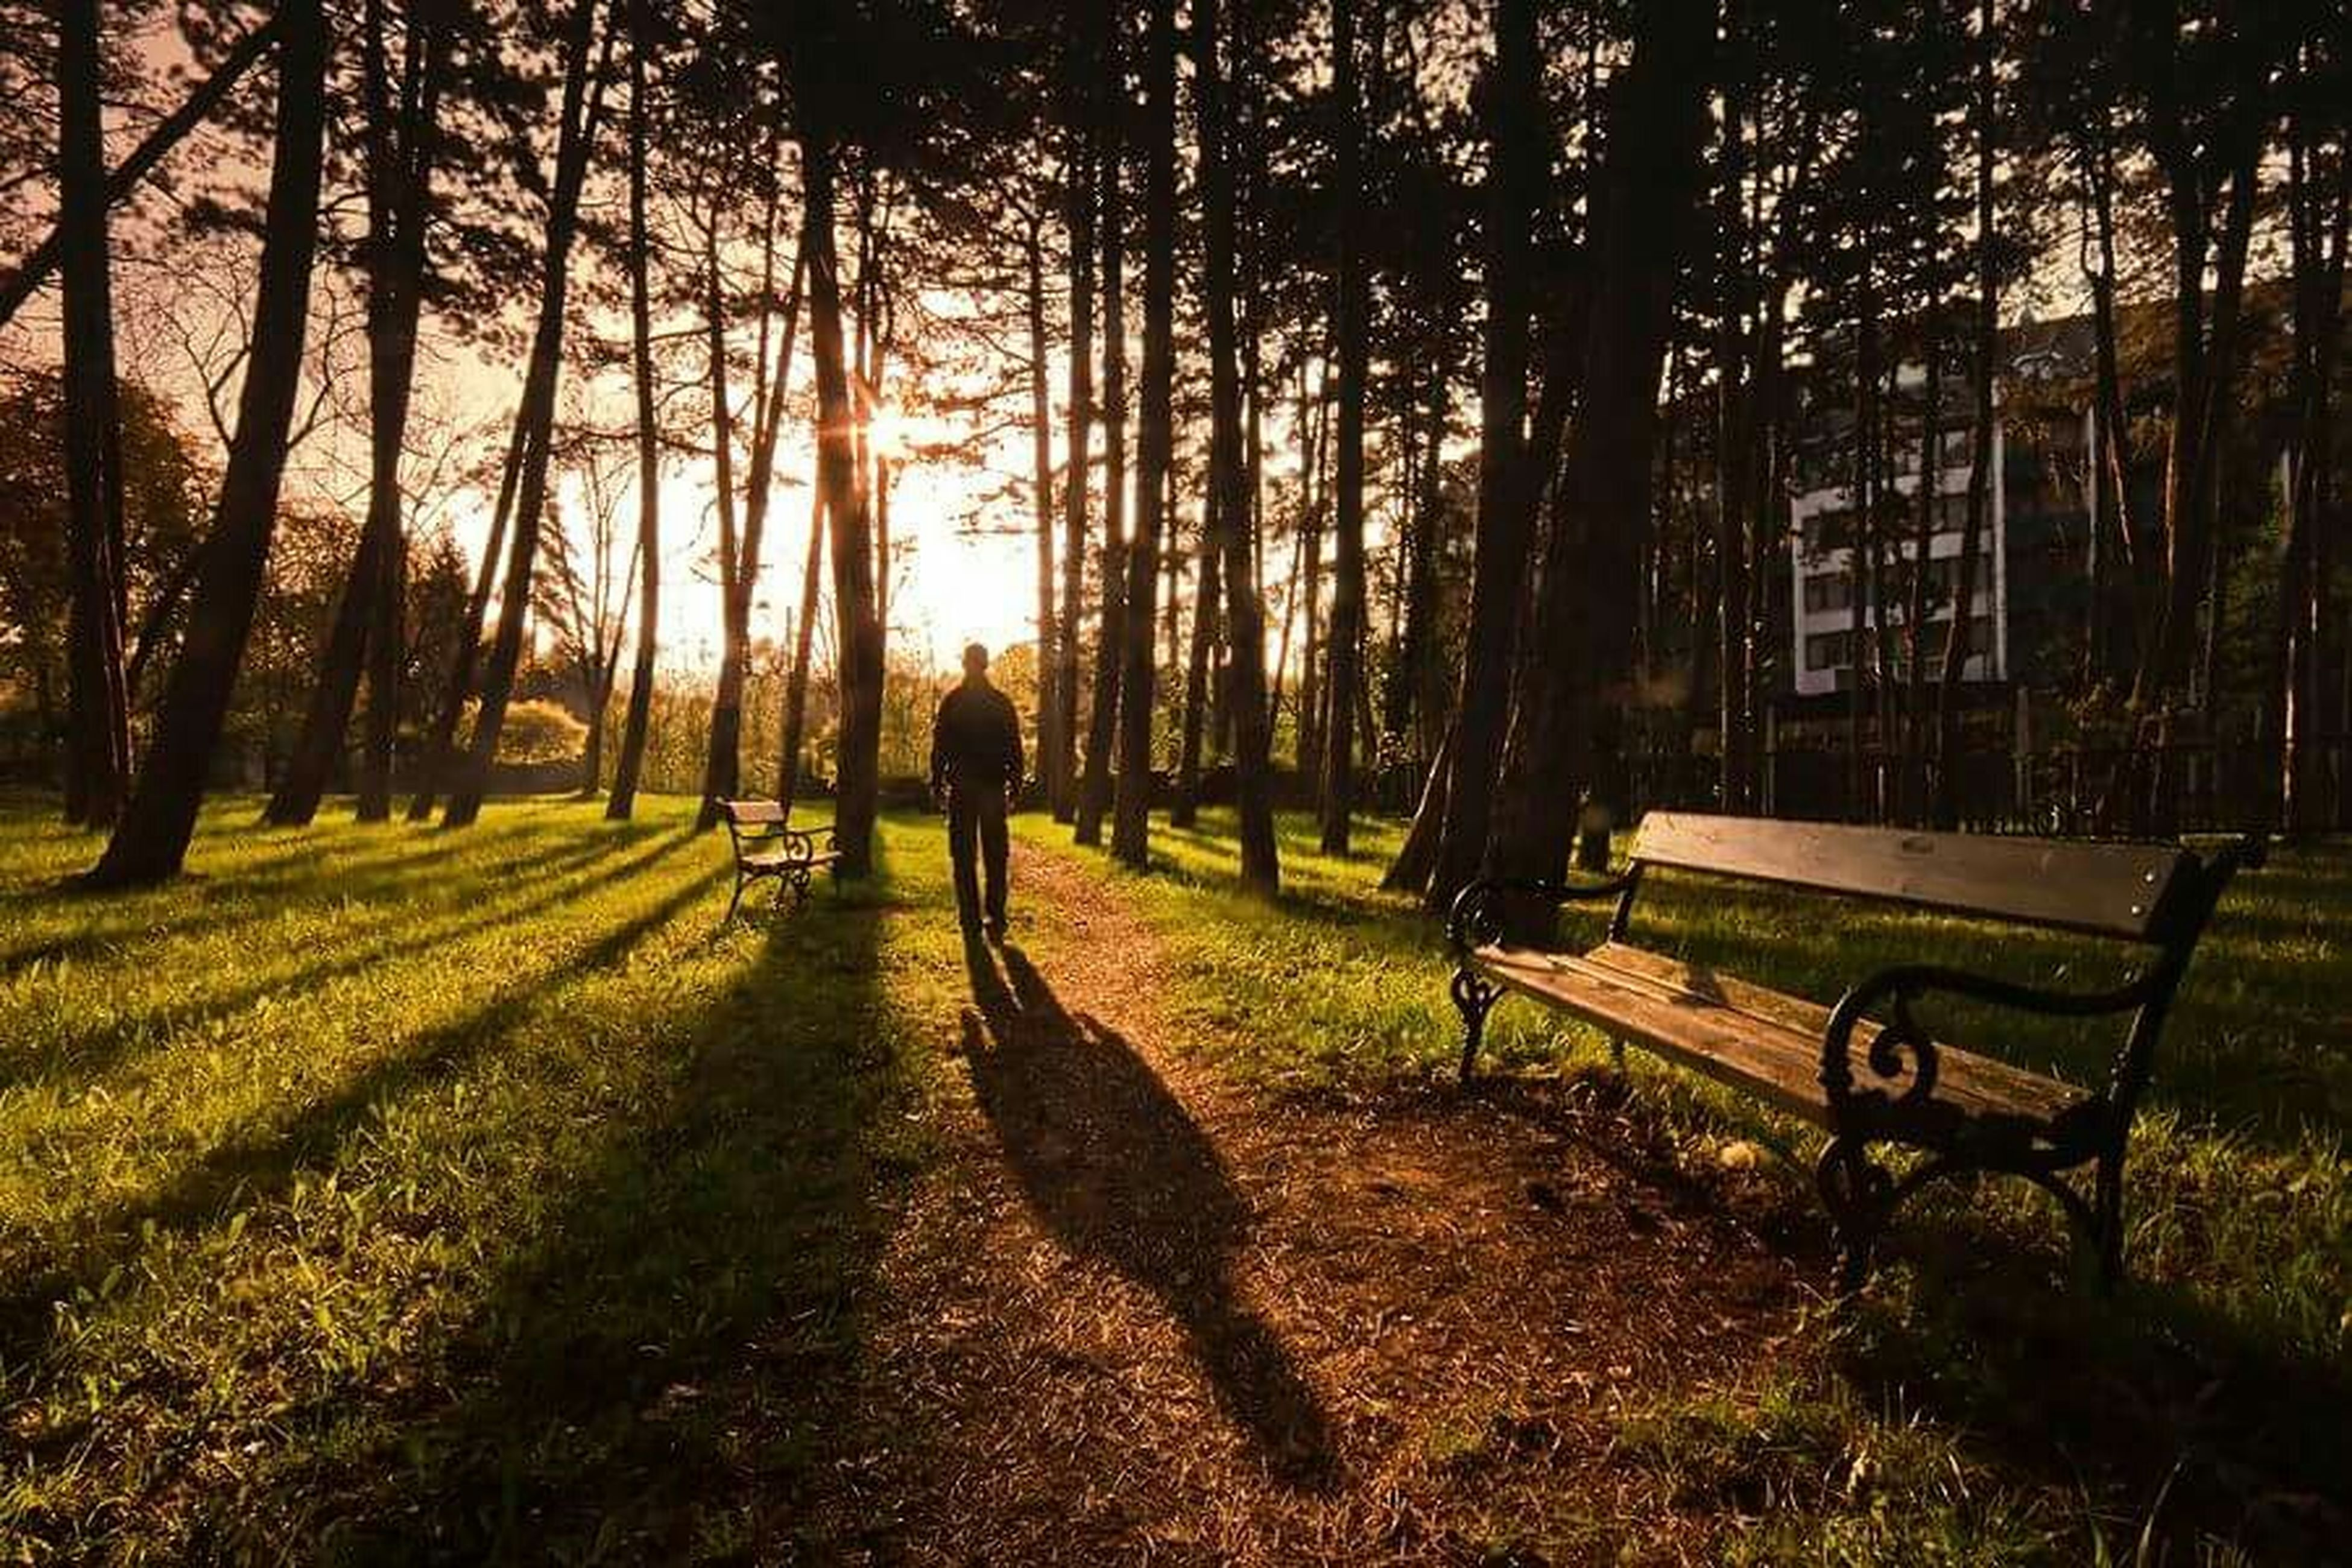 tree, lifestyles, leisure activity, walking, sunlight, men, shadow, grass, tree trunk, full length, growth, park - man made space, rear view, nature, field, tranquility, footpath, person